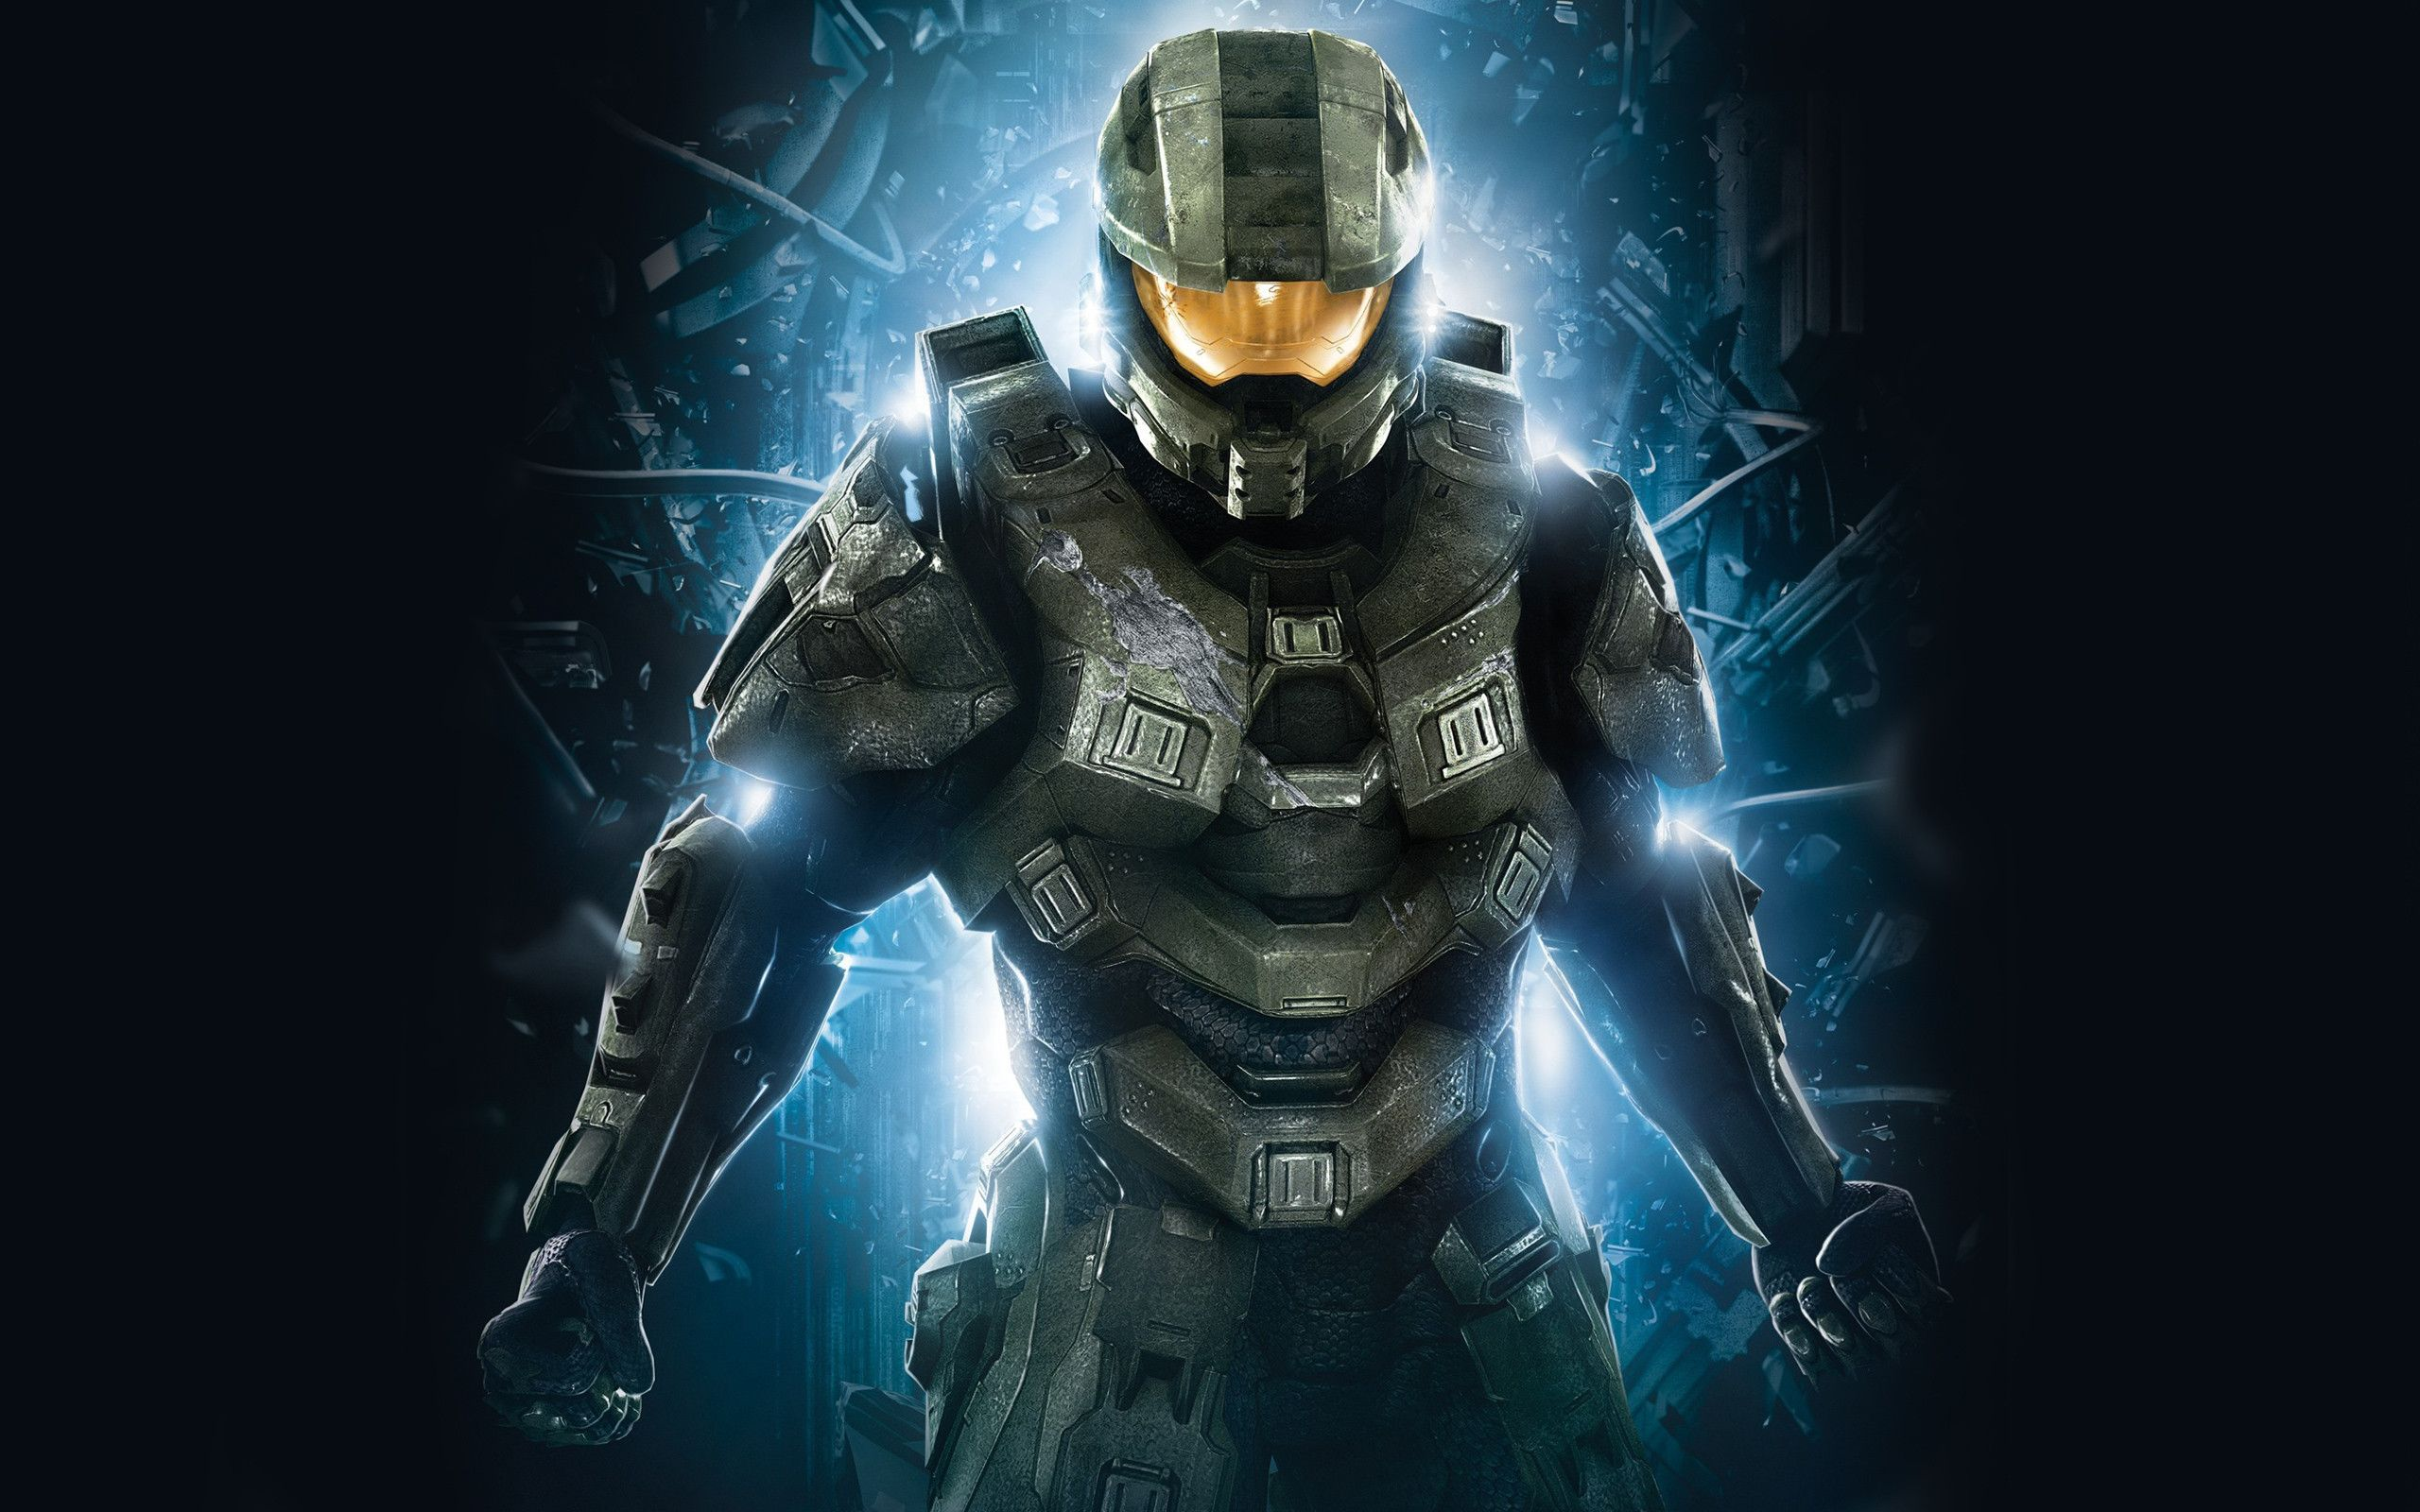 Halo 4 Backgrounds Hd Halo Game Halo 4 Halo Master Chief